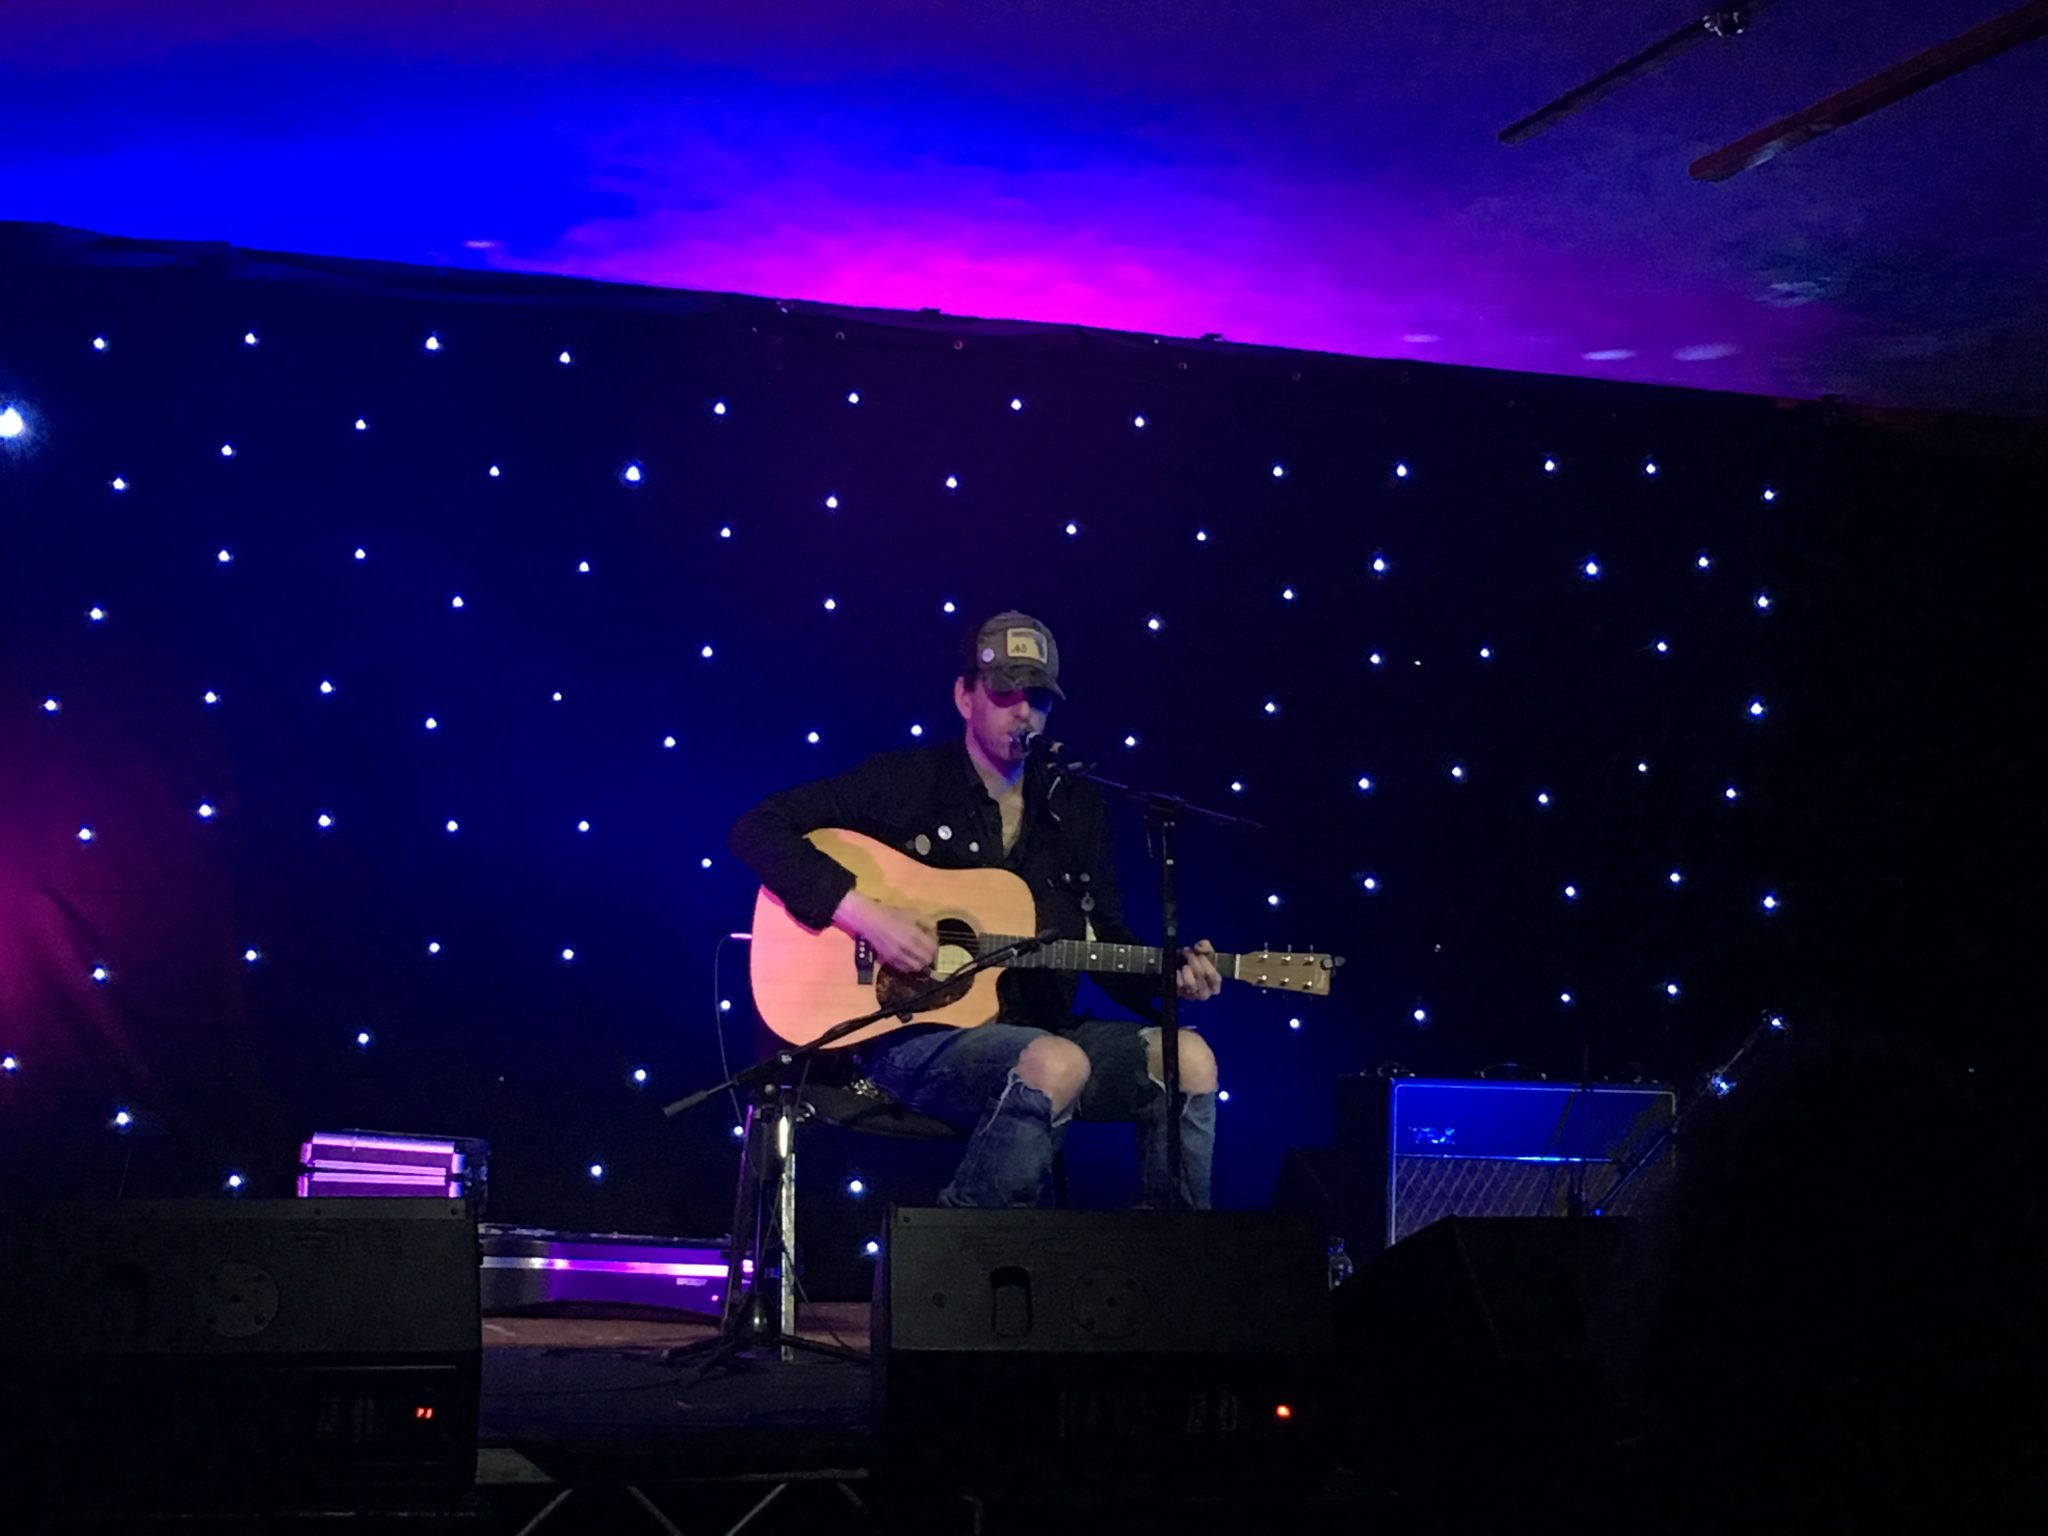 Live Review: John Murry at The Basement